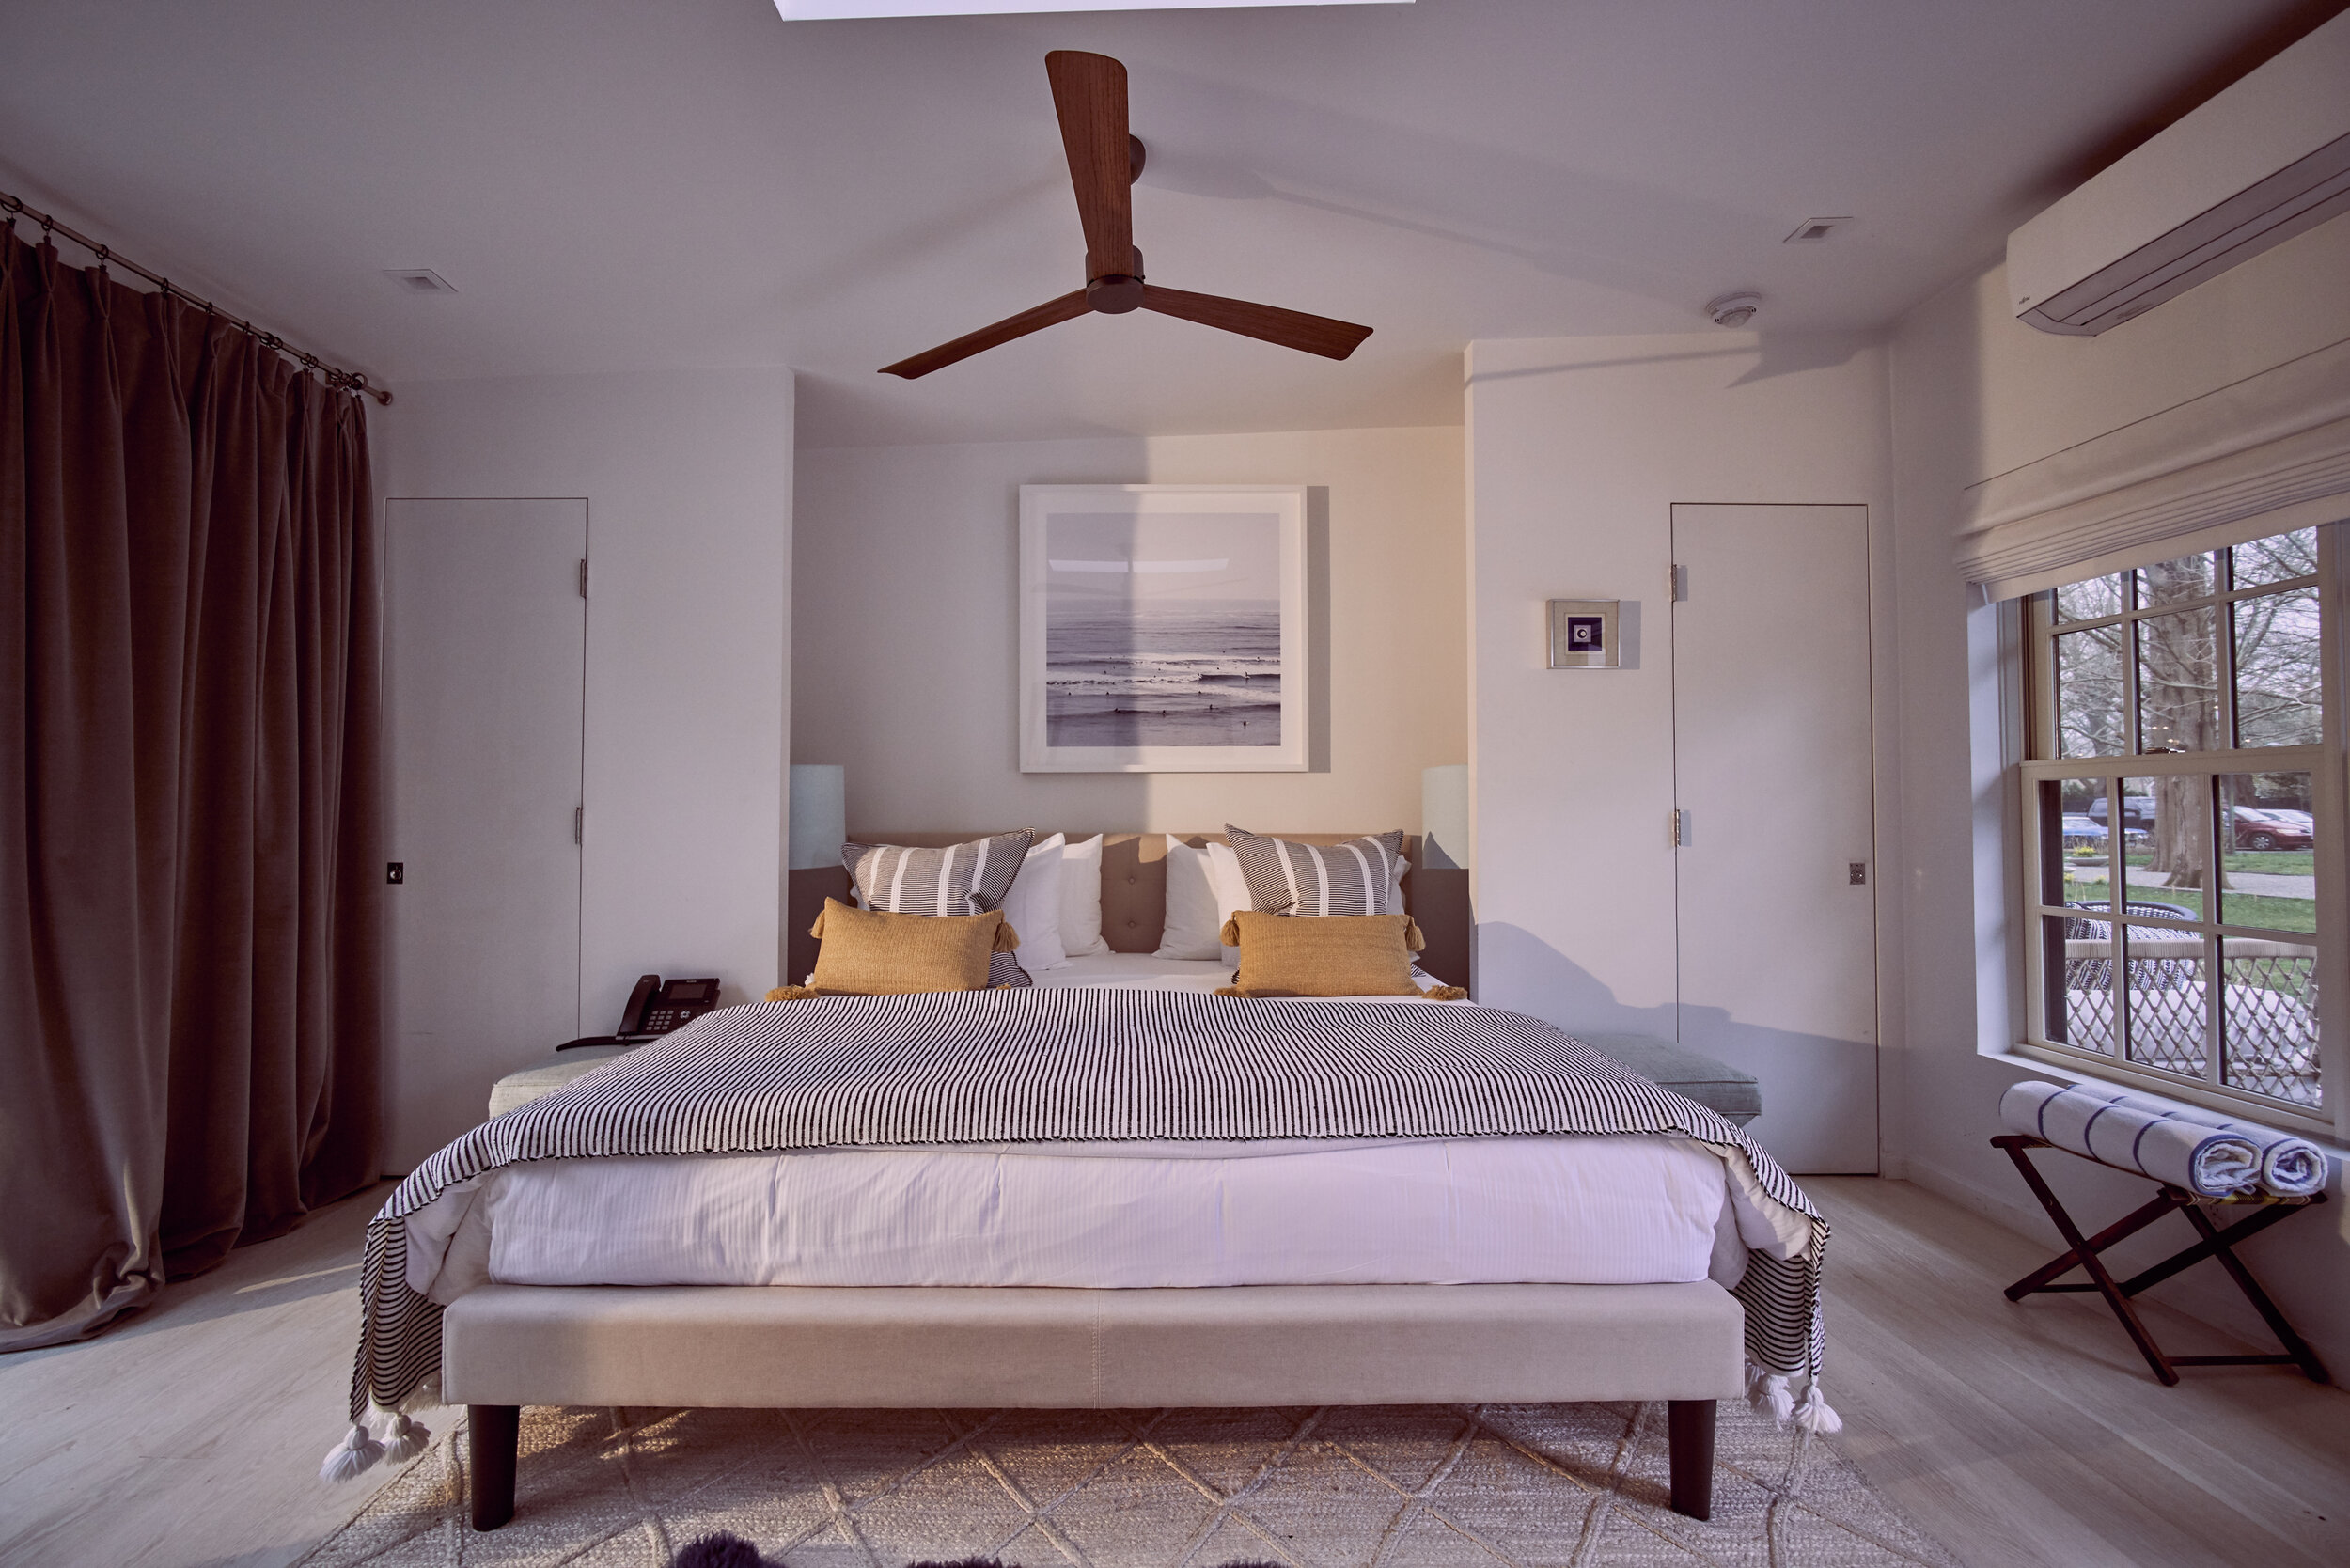 ROOM AT THE BEACH 63.jpg